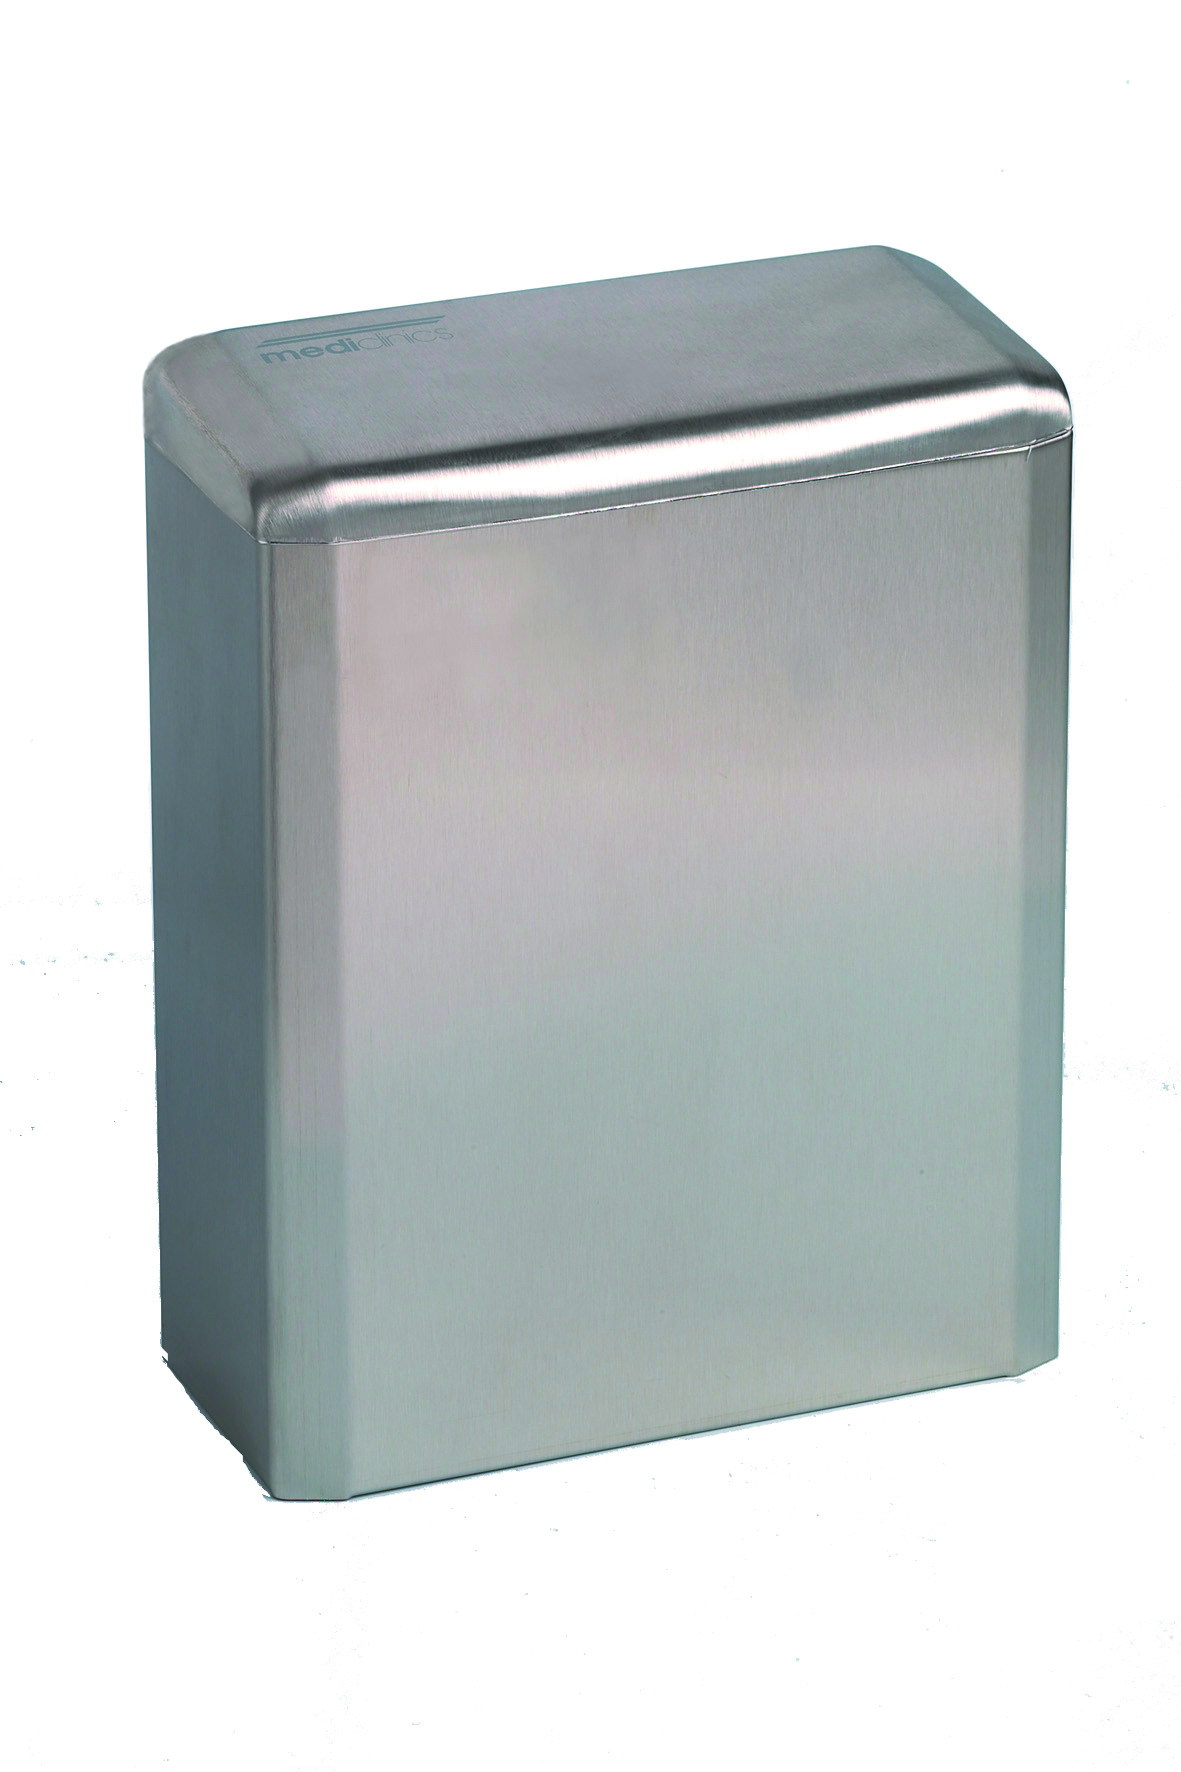 Sanitary Napkin Disposal Bin With Lid Made Of Stainless Steel